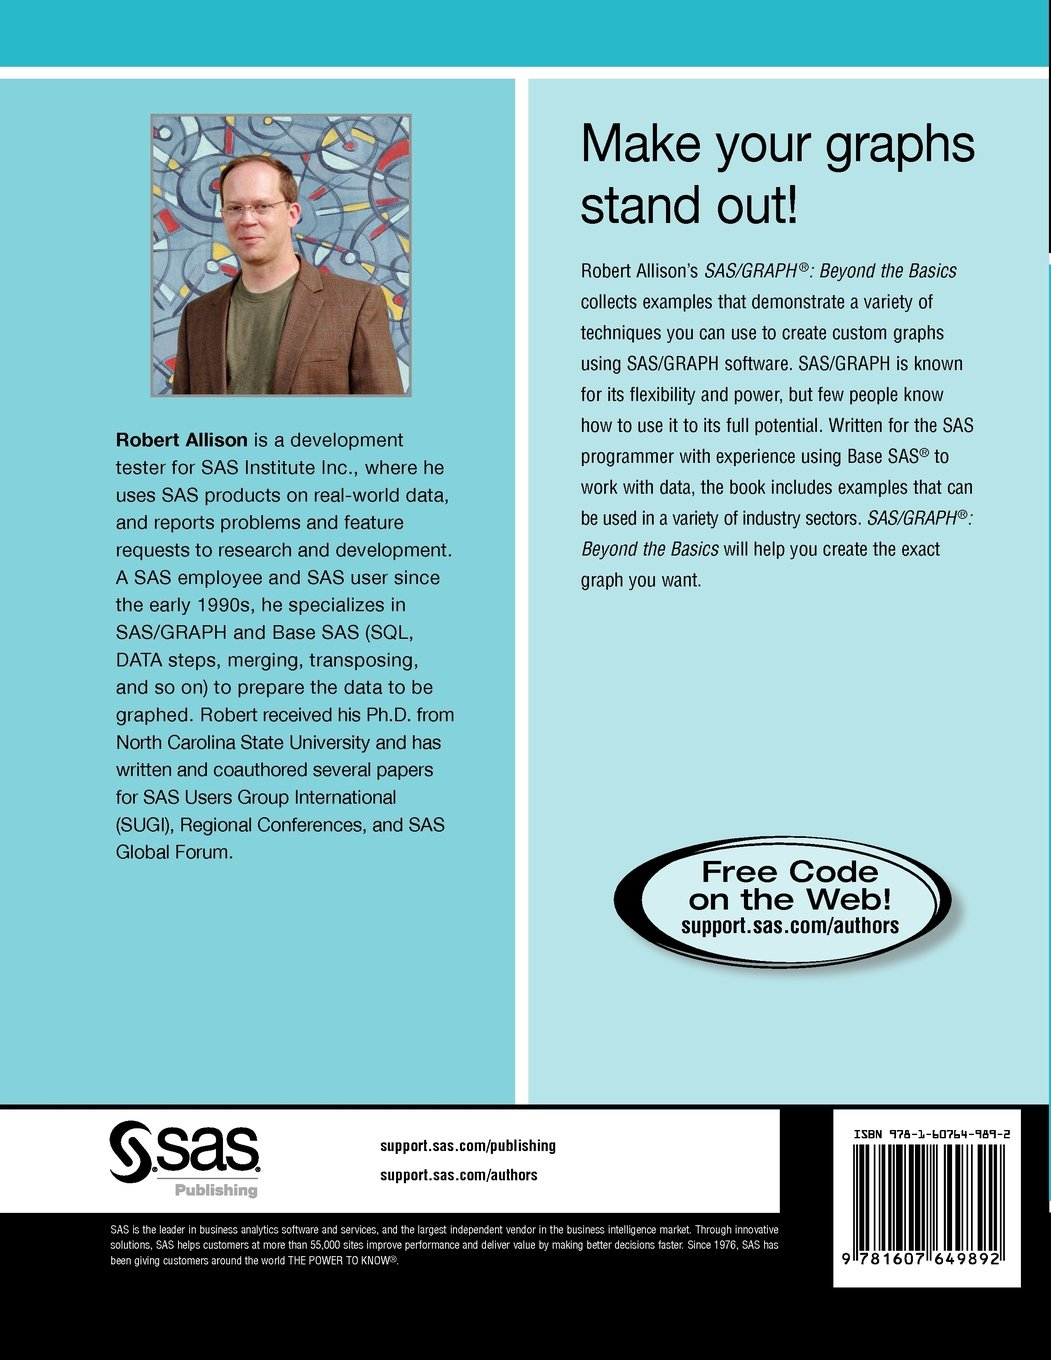 SAS/GRAPH: Beyond the Basics: Amazon.co.uk: Robert Allison Ph.D.:  9781607649892: Books